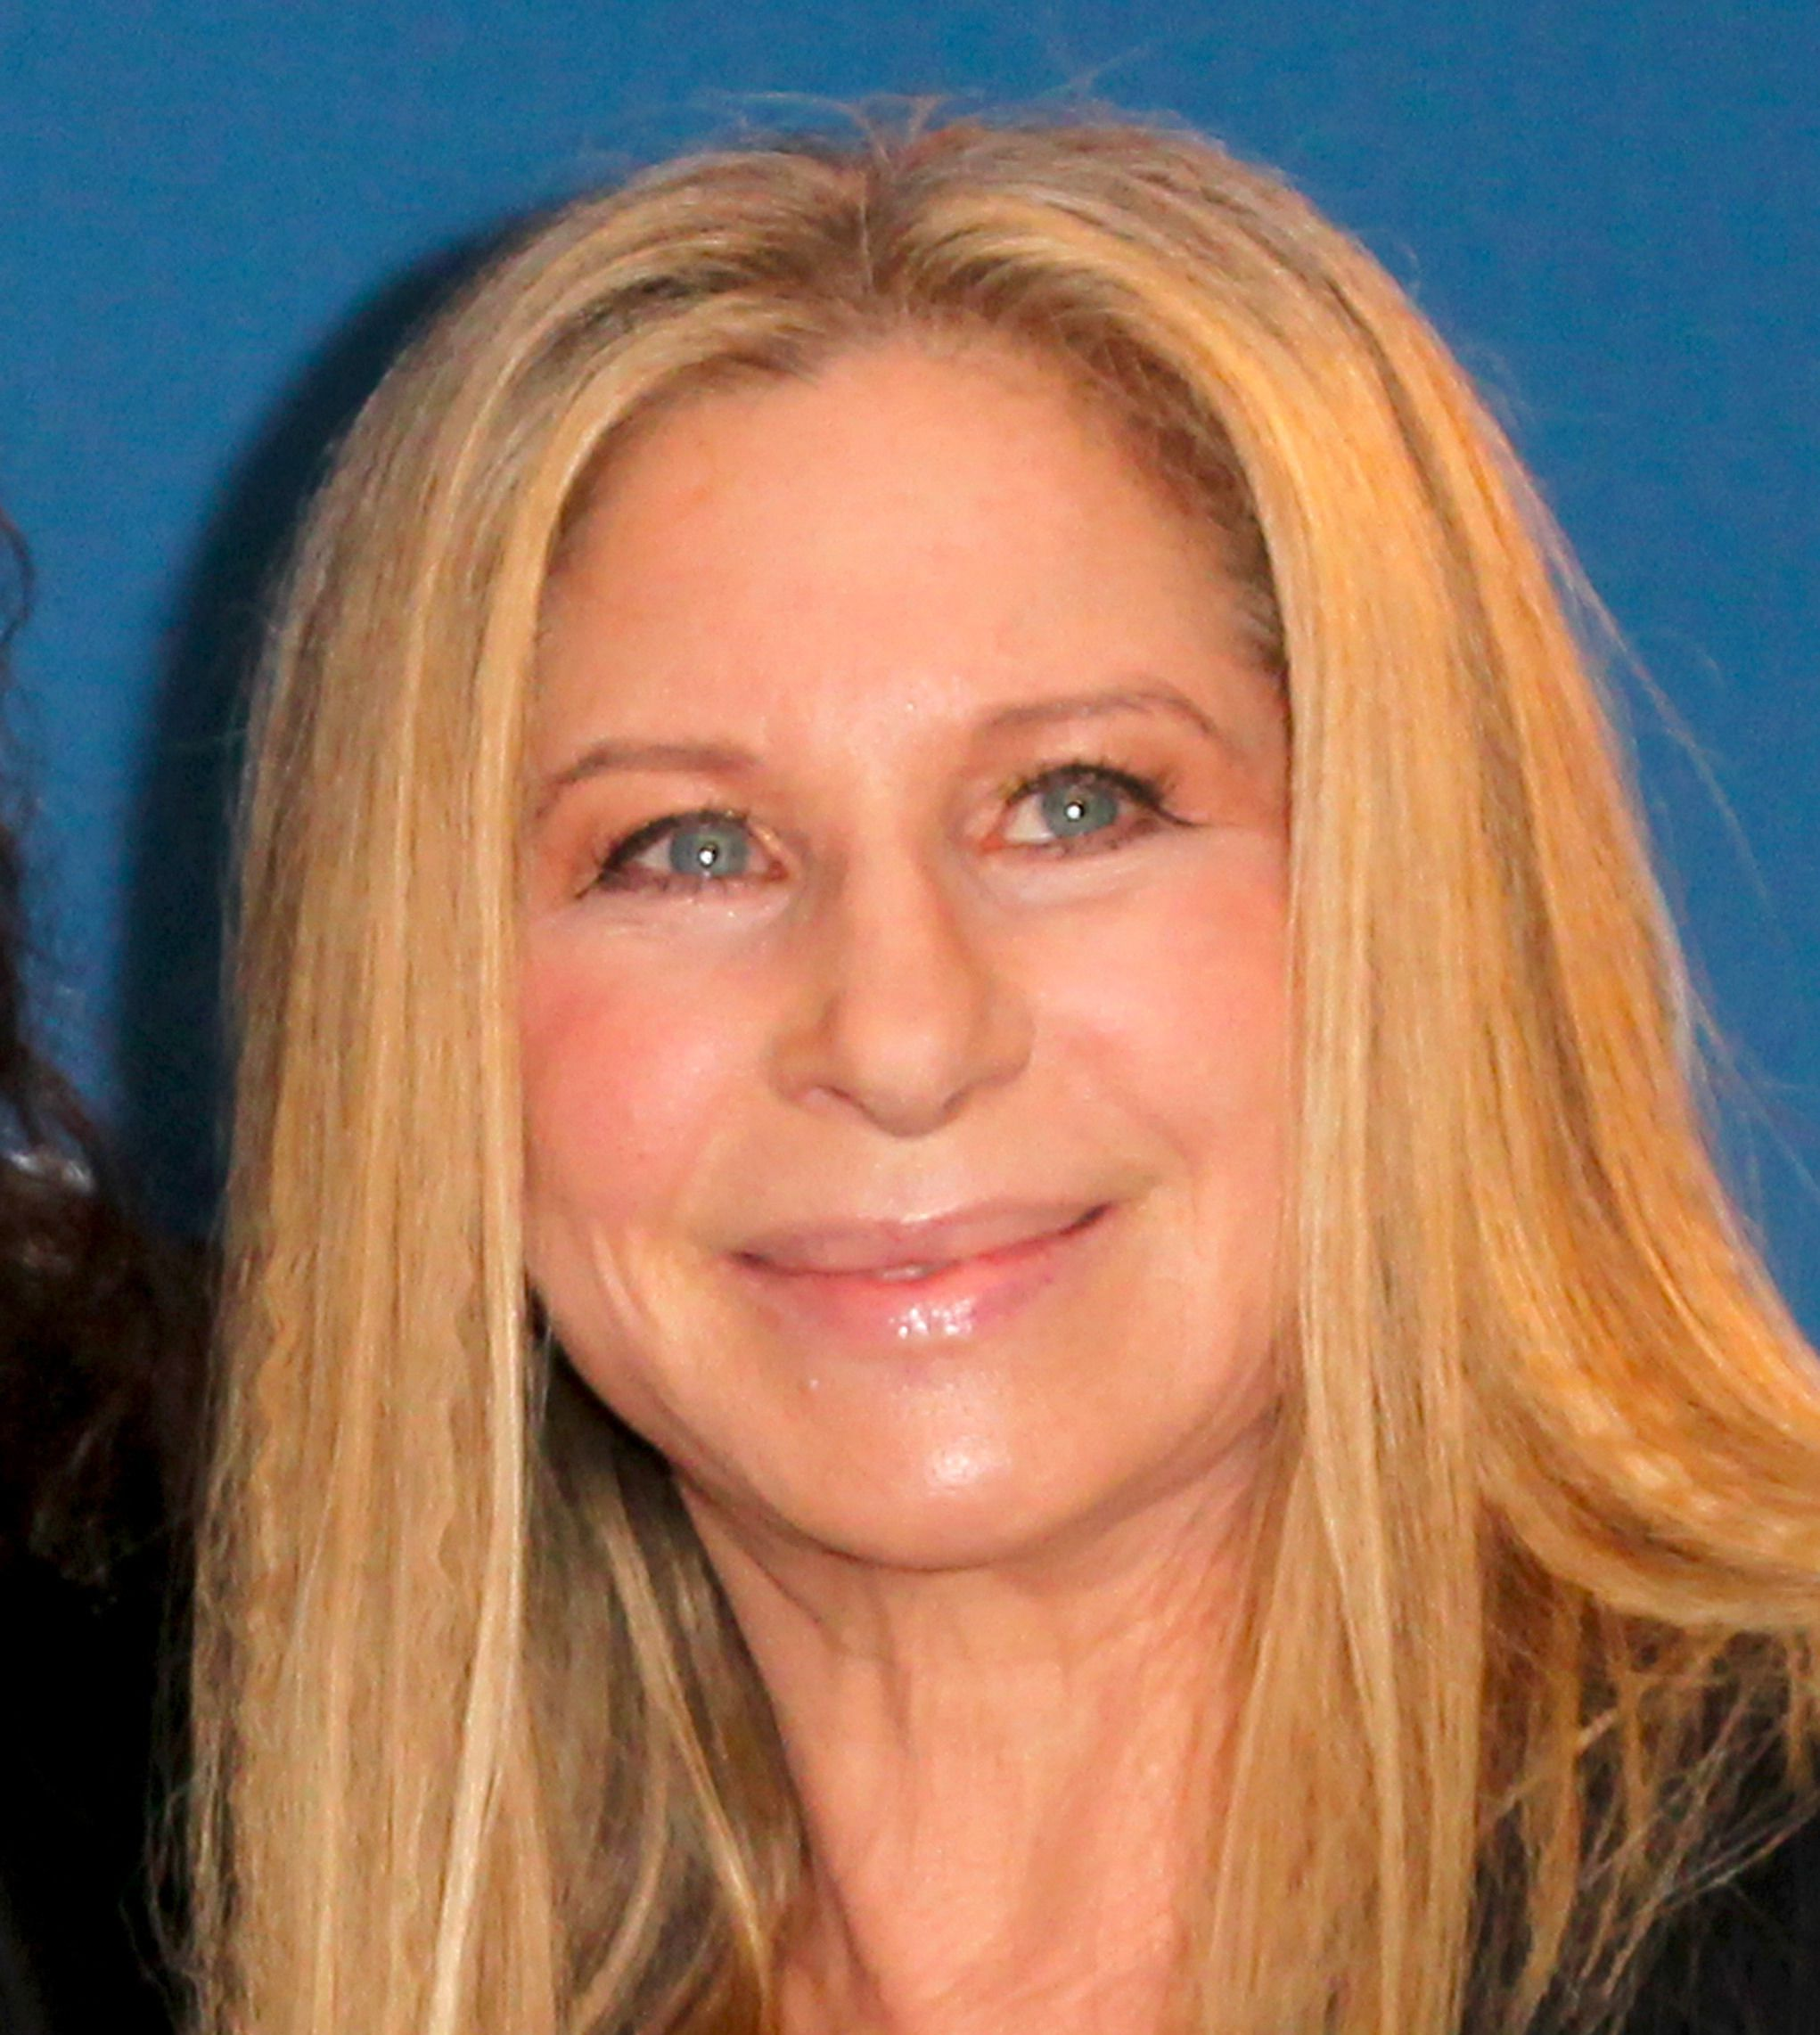 Barbra Streisand February 7, 2015 in Century City, California.